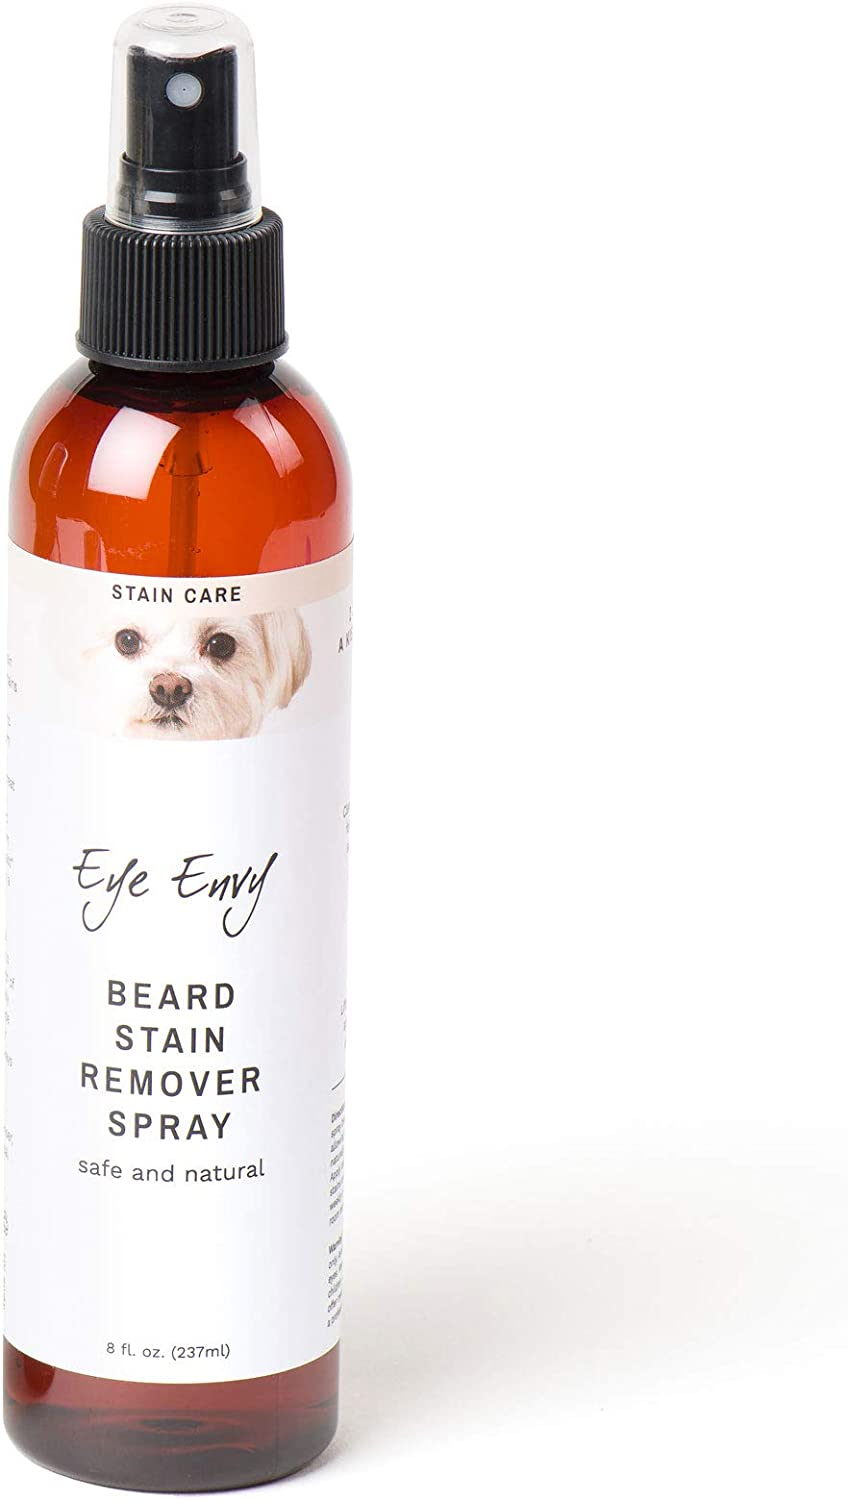 Eye Envy Beard Stain Remover Spray for Dogs/Cats|100% Natural and Safe|Lift Stains from Drooling, Saliva, Food, Runoff from Tearing|Treats The Cause of staining|Removes Odors|Keeps Beard Clean, 8oz